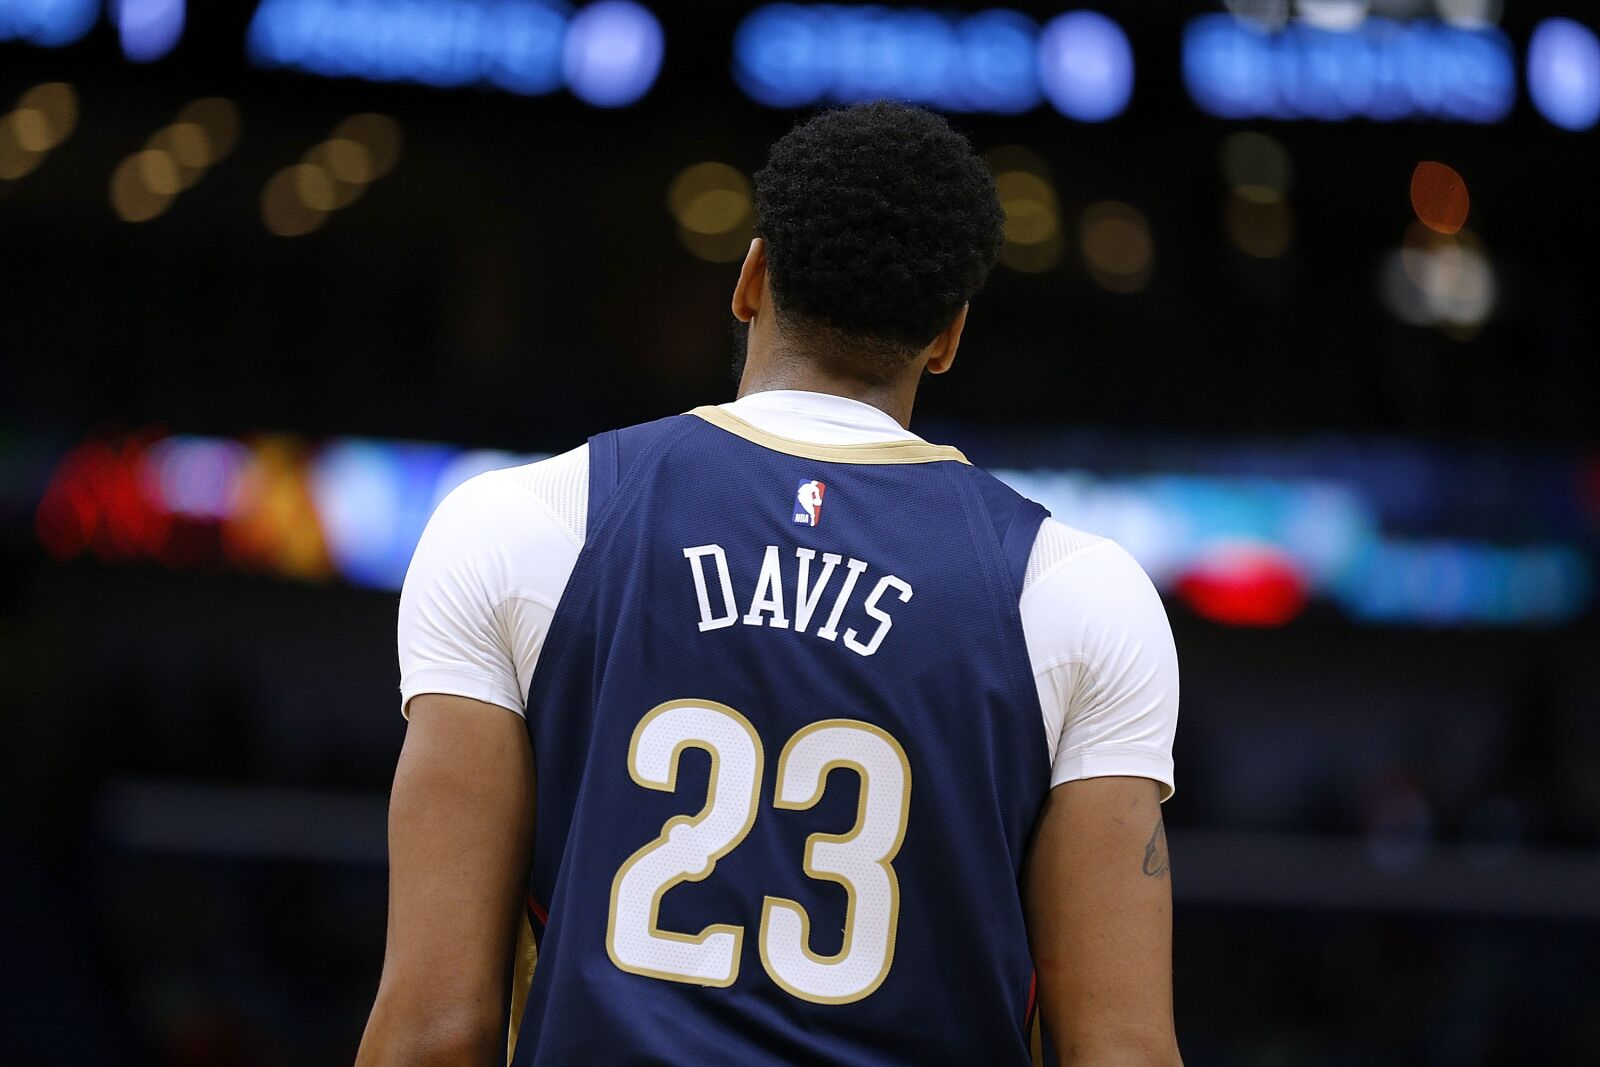 New York Knicks did not lose Anthony Davis trade if deal was impossible